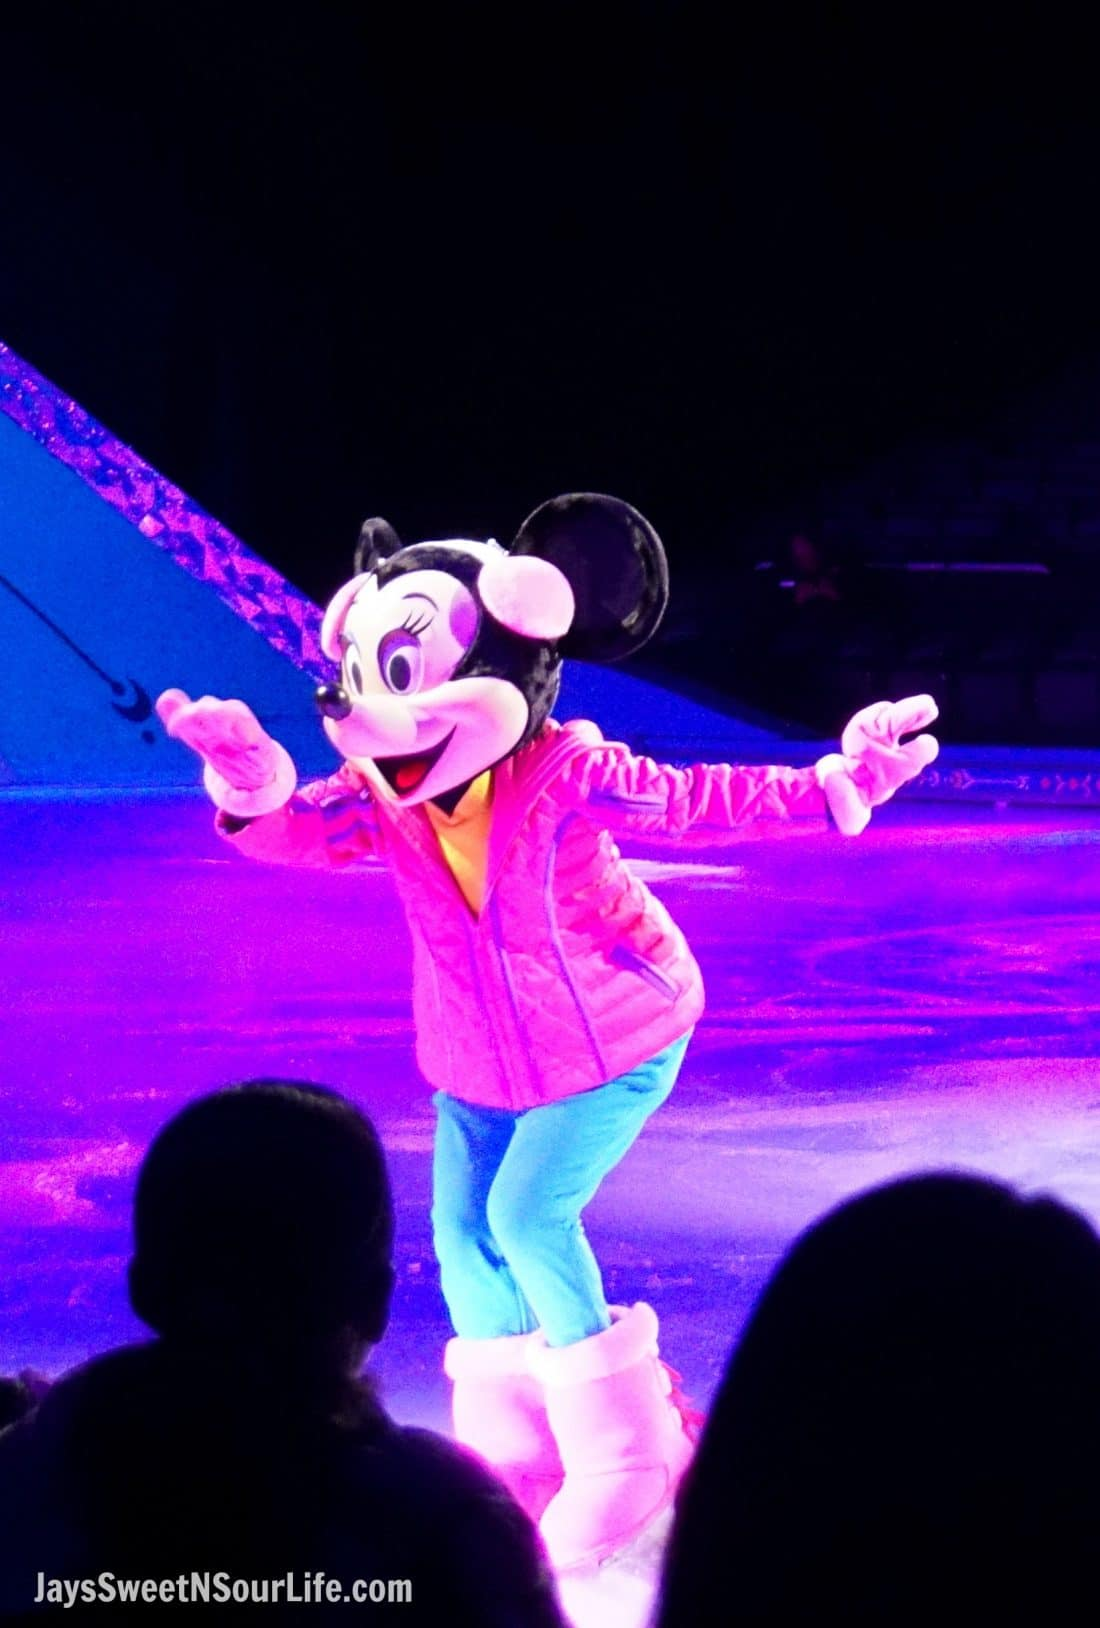 Disney On Ice Presents Frozen coming to a town near you. The beginning of the show with all of the famous Disney Chracters including Minnie Mouse.